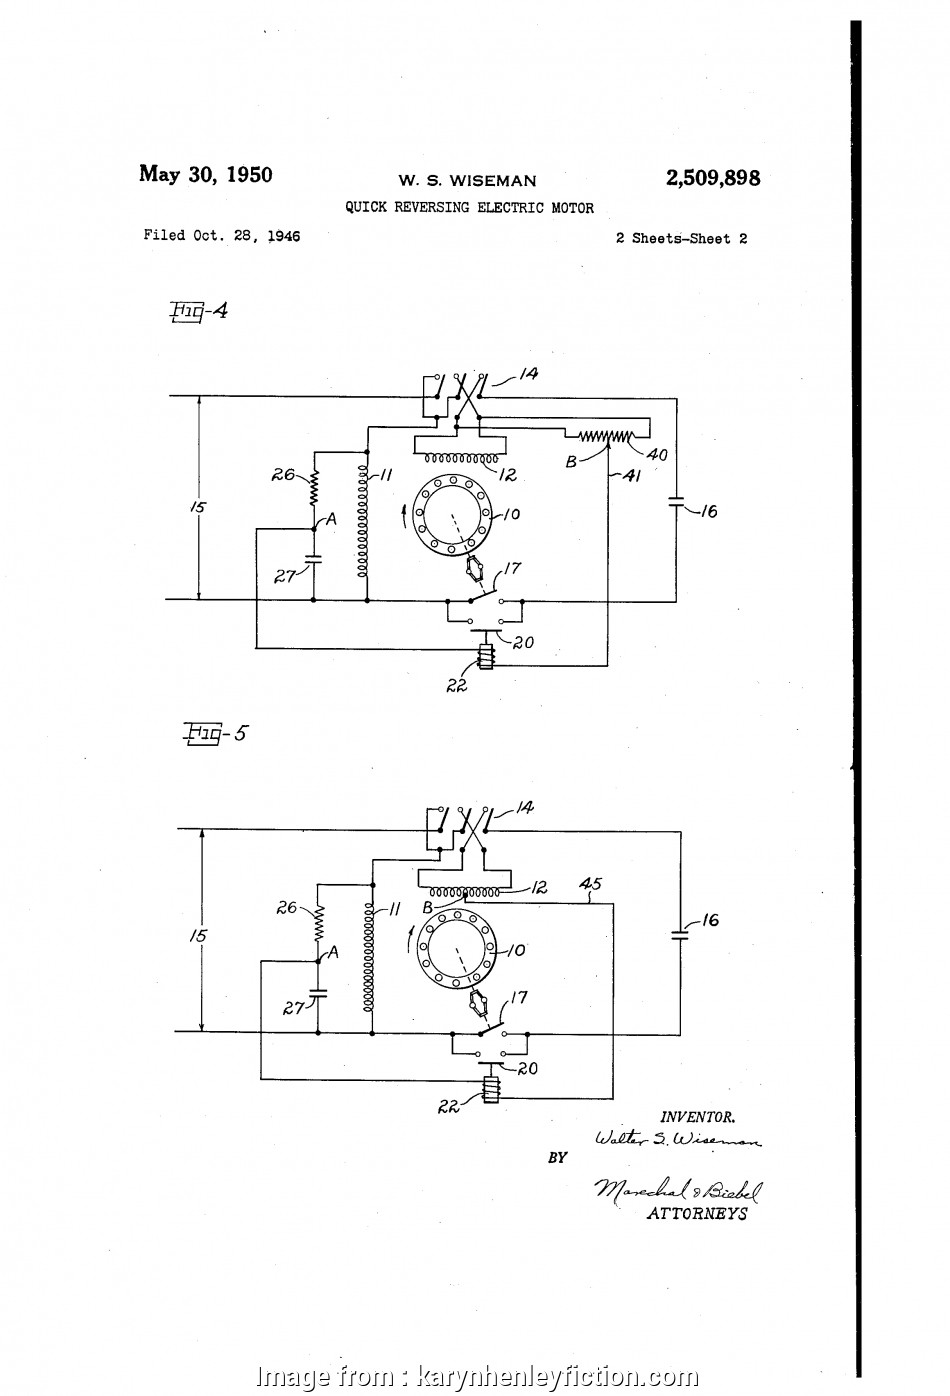 dayton electric motors wiring diagram wagner electric motor wiring diagram Collection-Dayton Electric Motors Wiring Diagram Best I Have A. DOWNLOAD. Wiring Diagram Dayton Electric Motors Wiring Diagram Nice Wagner Electric Motor Wiring Diagram Collection-Dayton Electric Motors Wiring Diagram Best I Have A. DOWNLOAD. Wiring Diagram Photos